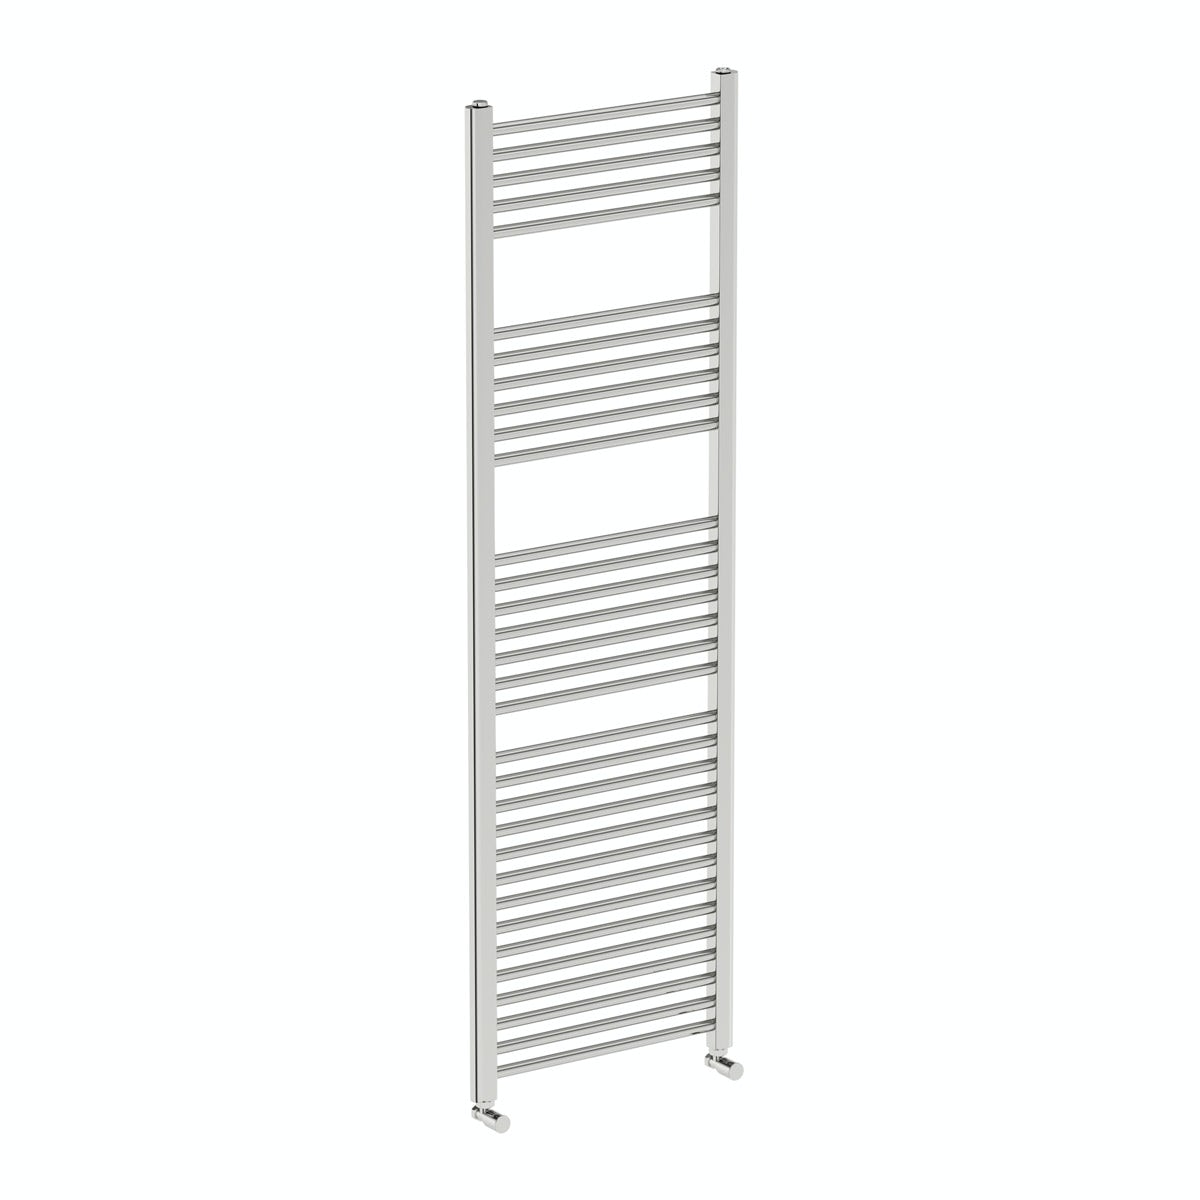 Eden round heated towel rail 1600 x 500